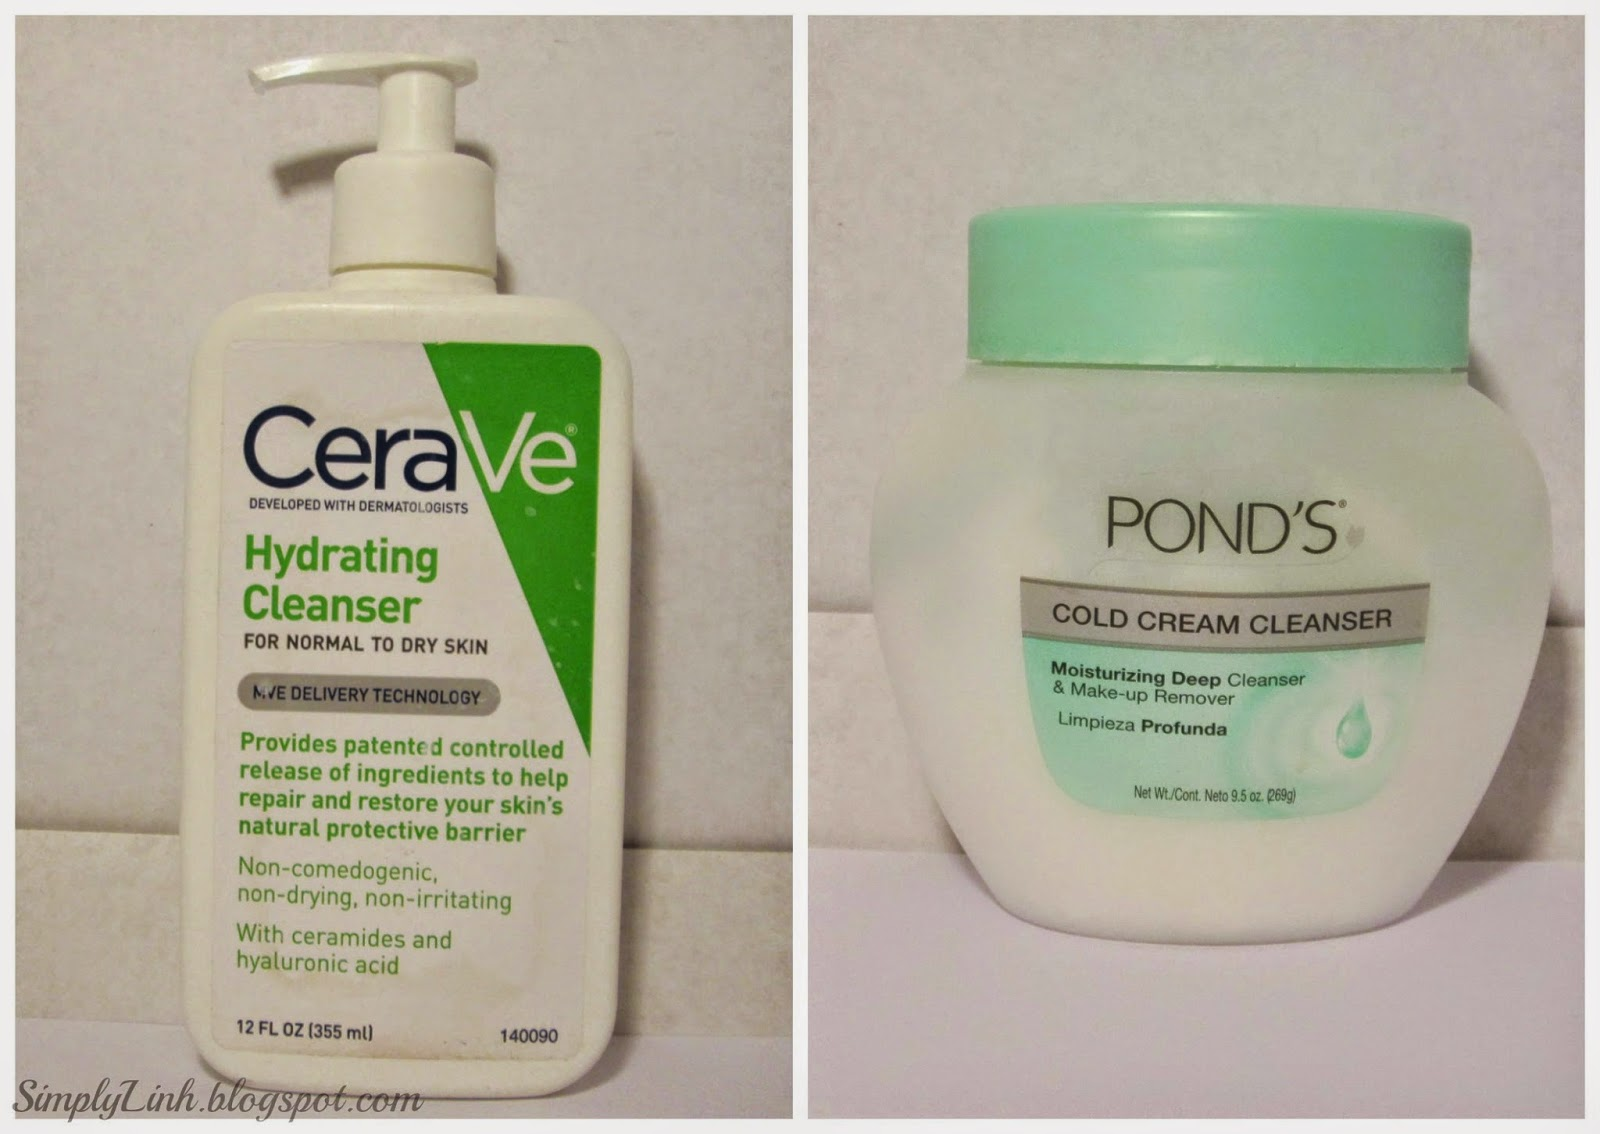 CeraVe Hydrating Cleanser, Ponds Cold Cream Cleanser